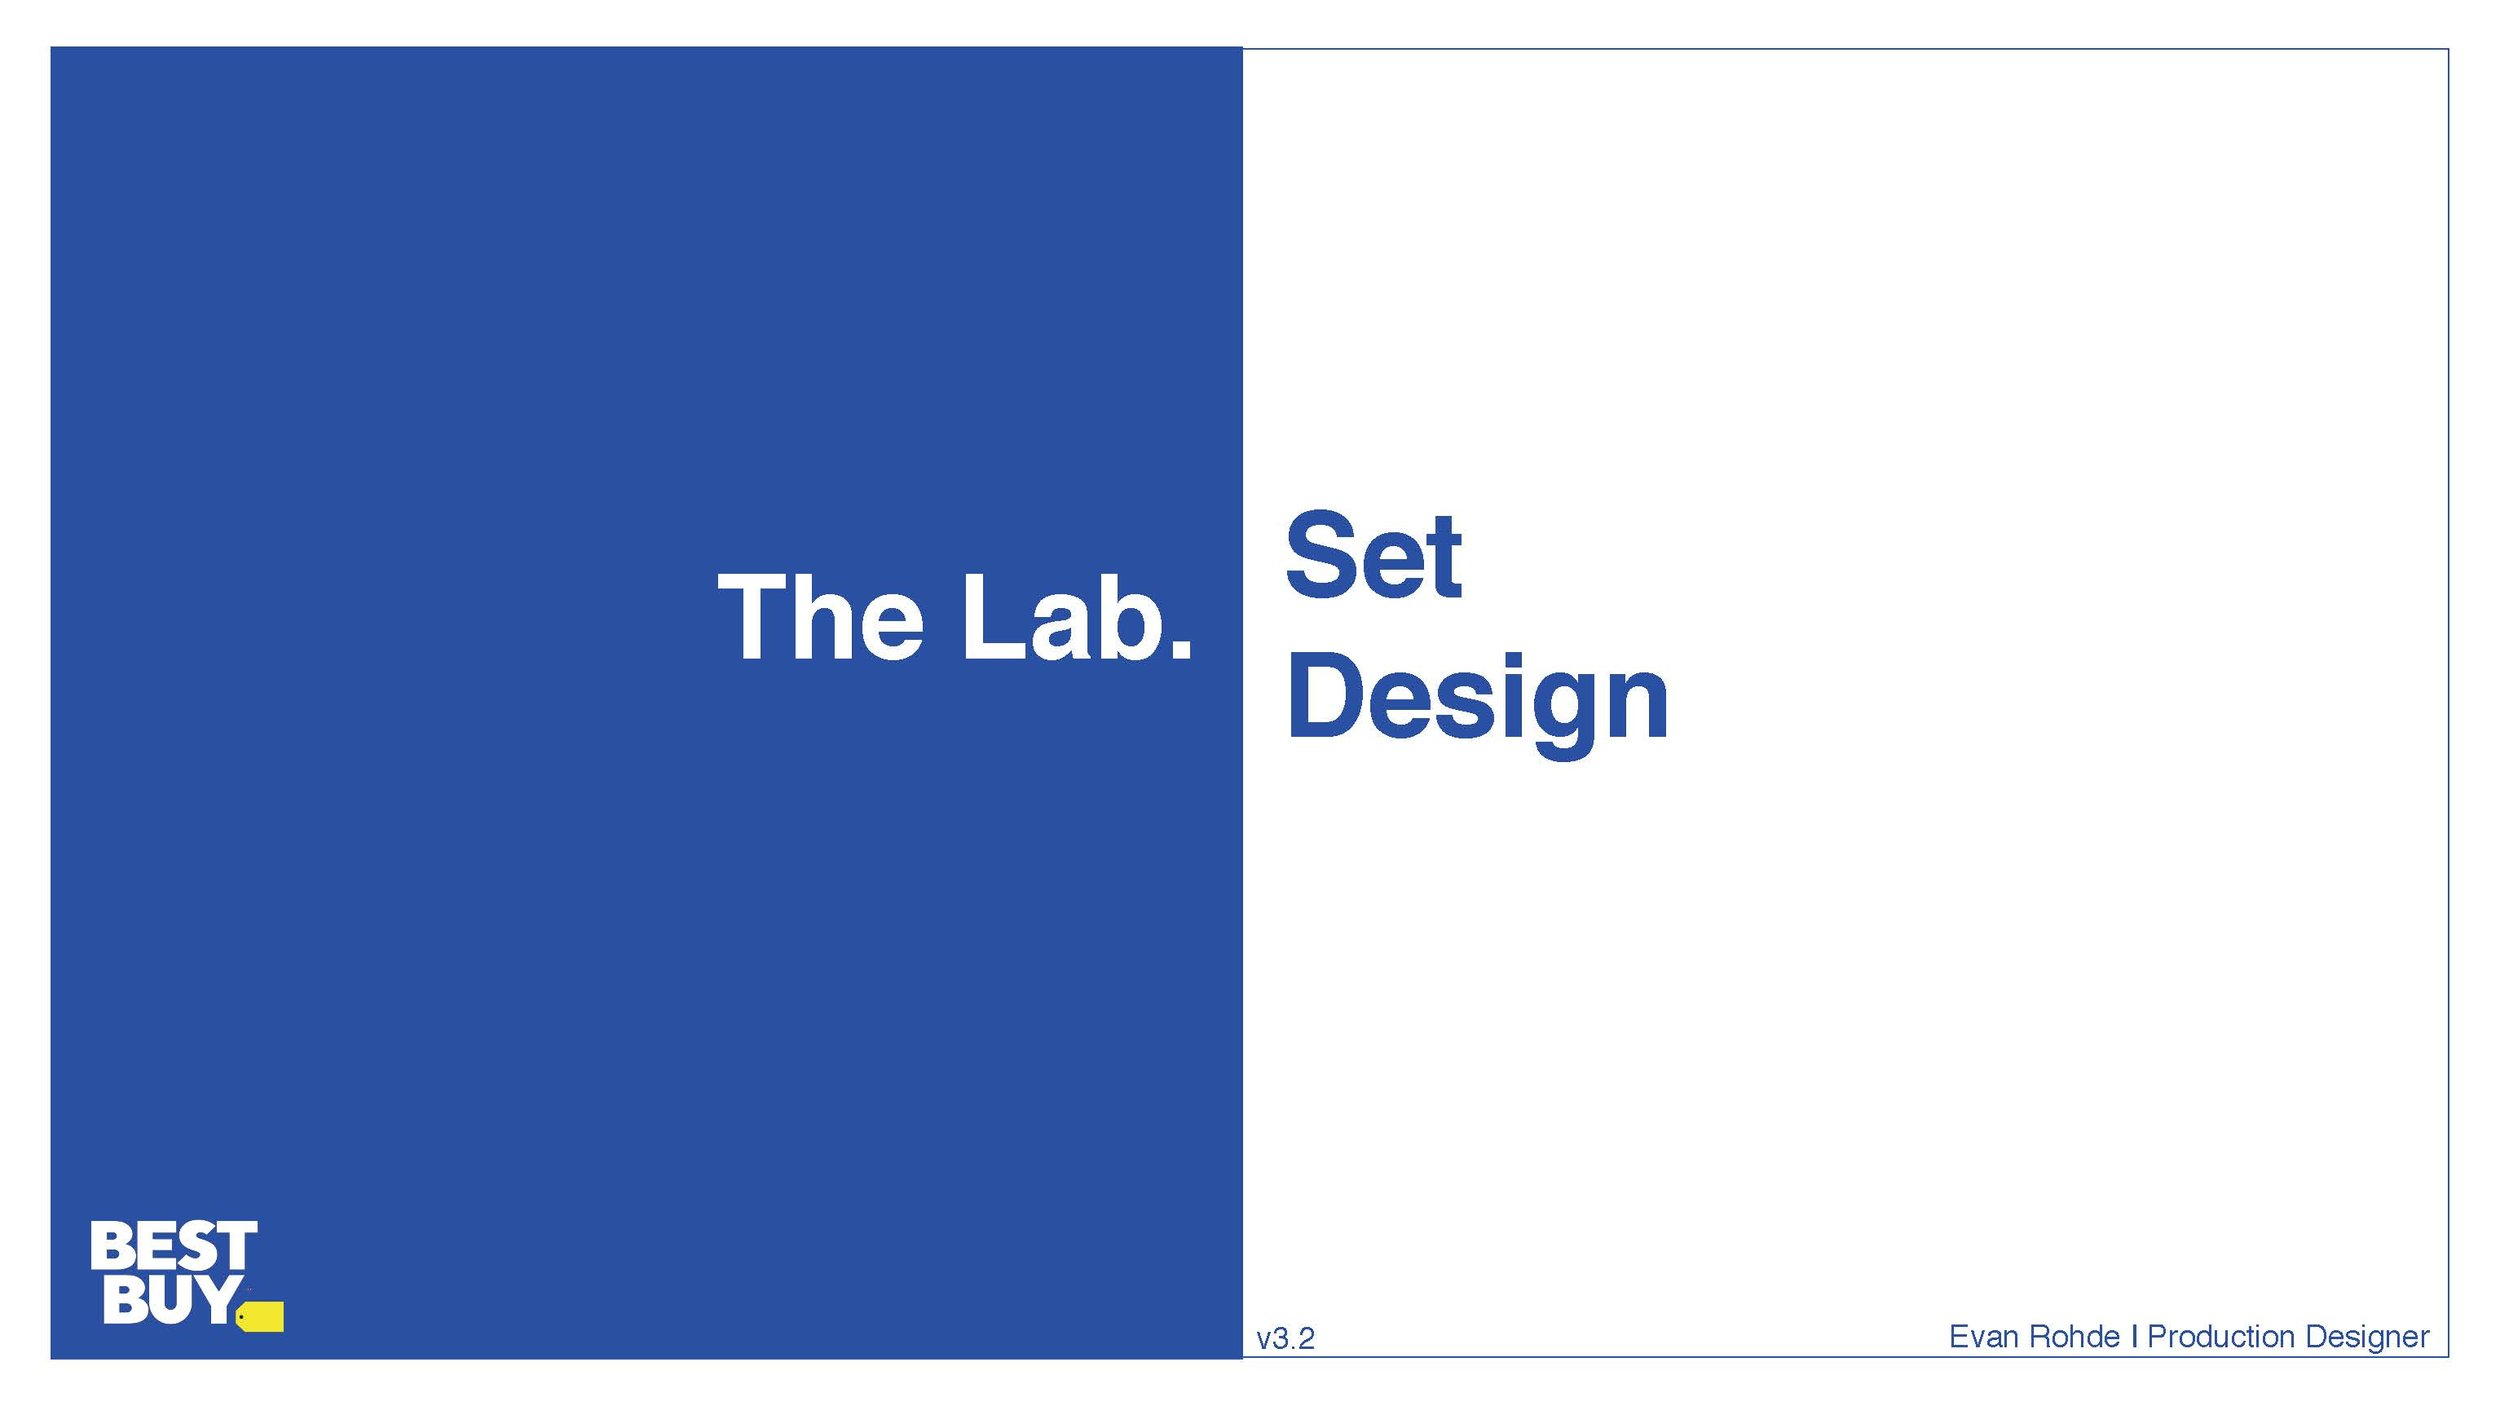 Best Buy %22The Lab%22- Set Design 3.2a copy_Page_12.jpg